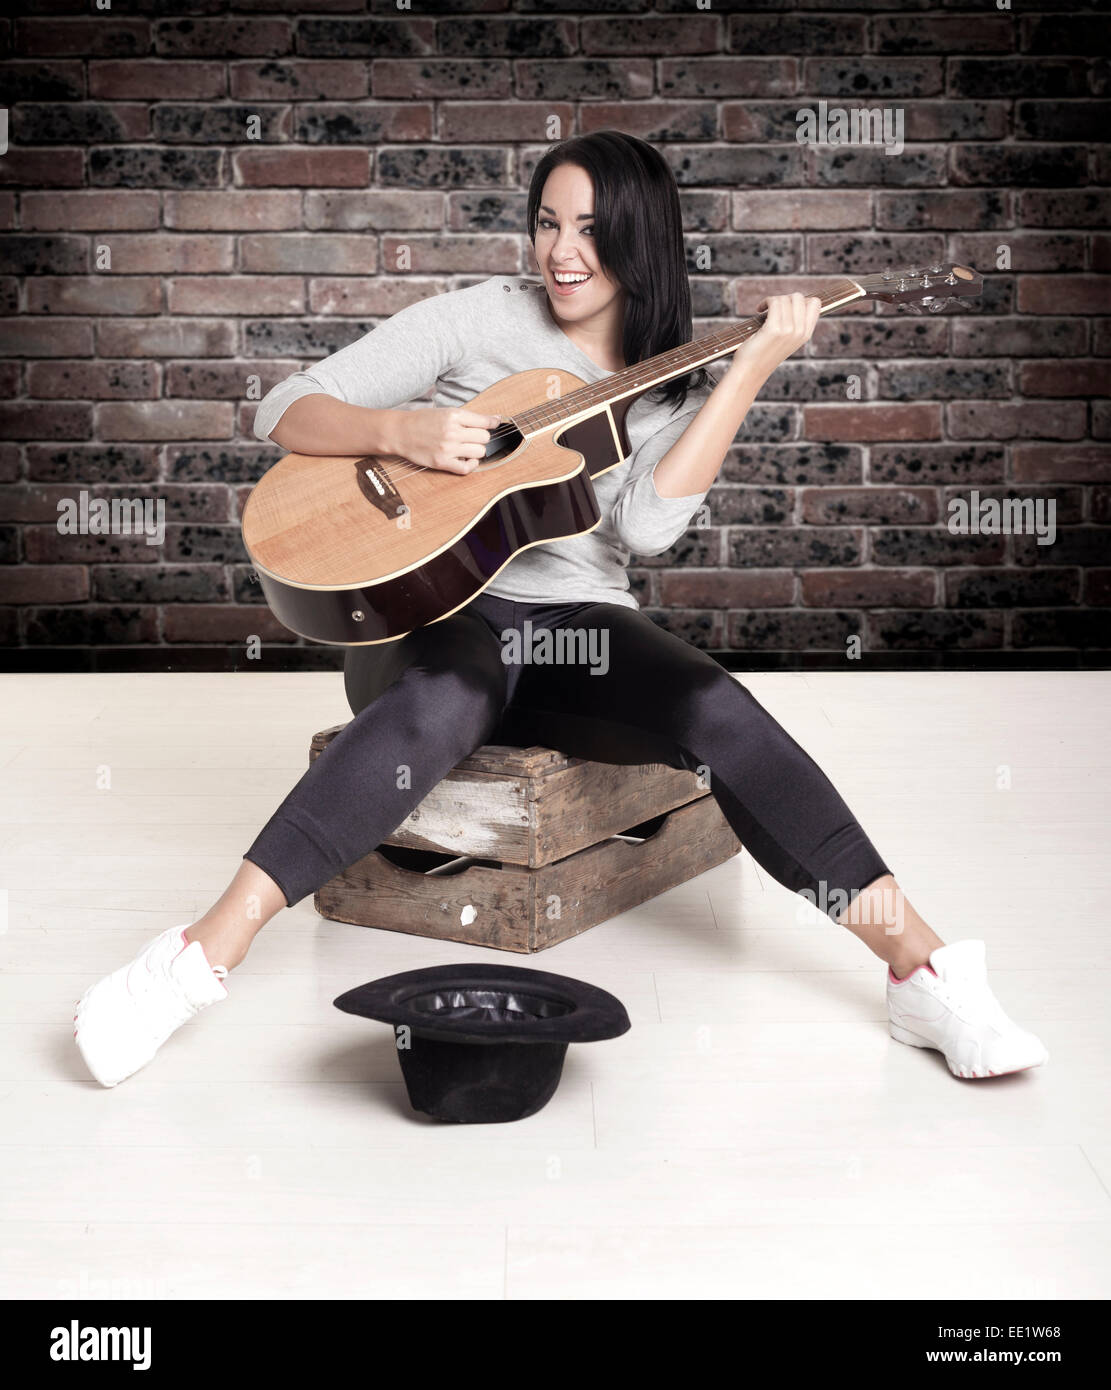 Young female busker sitting on a wooden box playing her guitar for money. - Stock Image